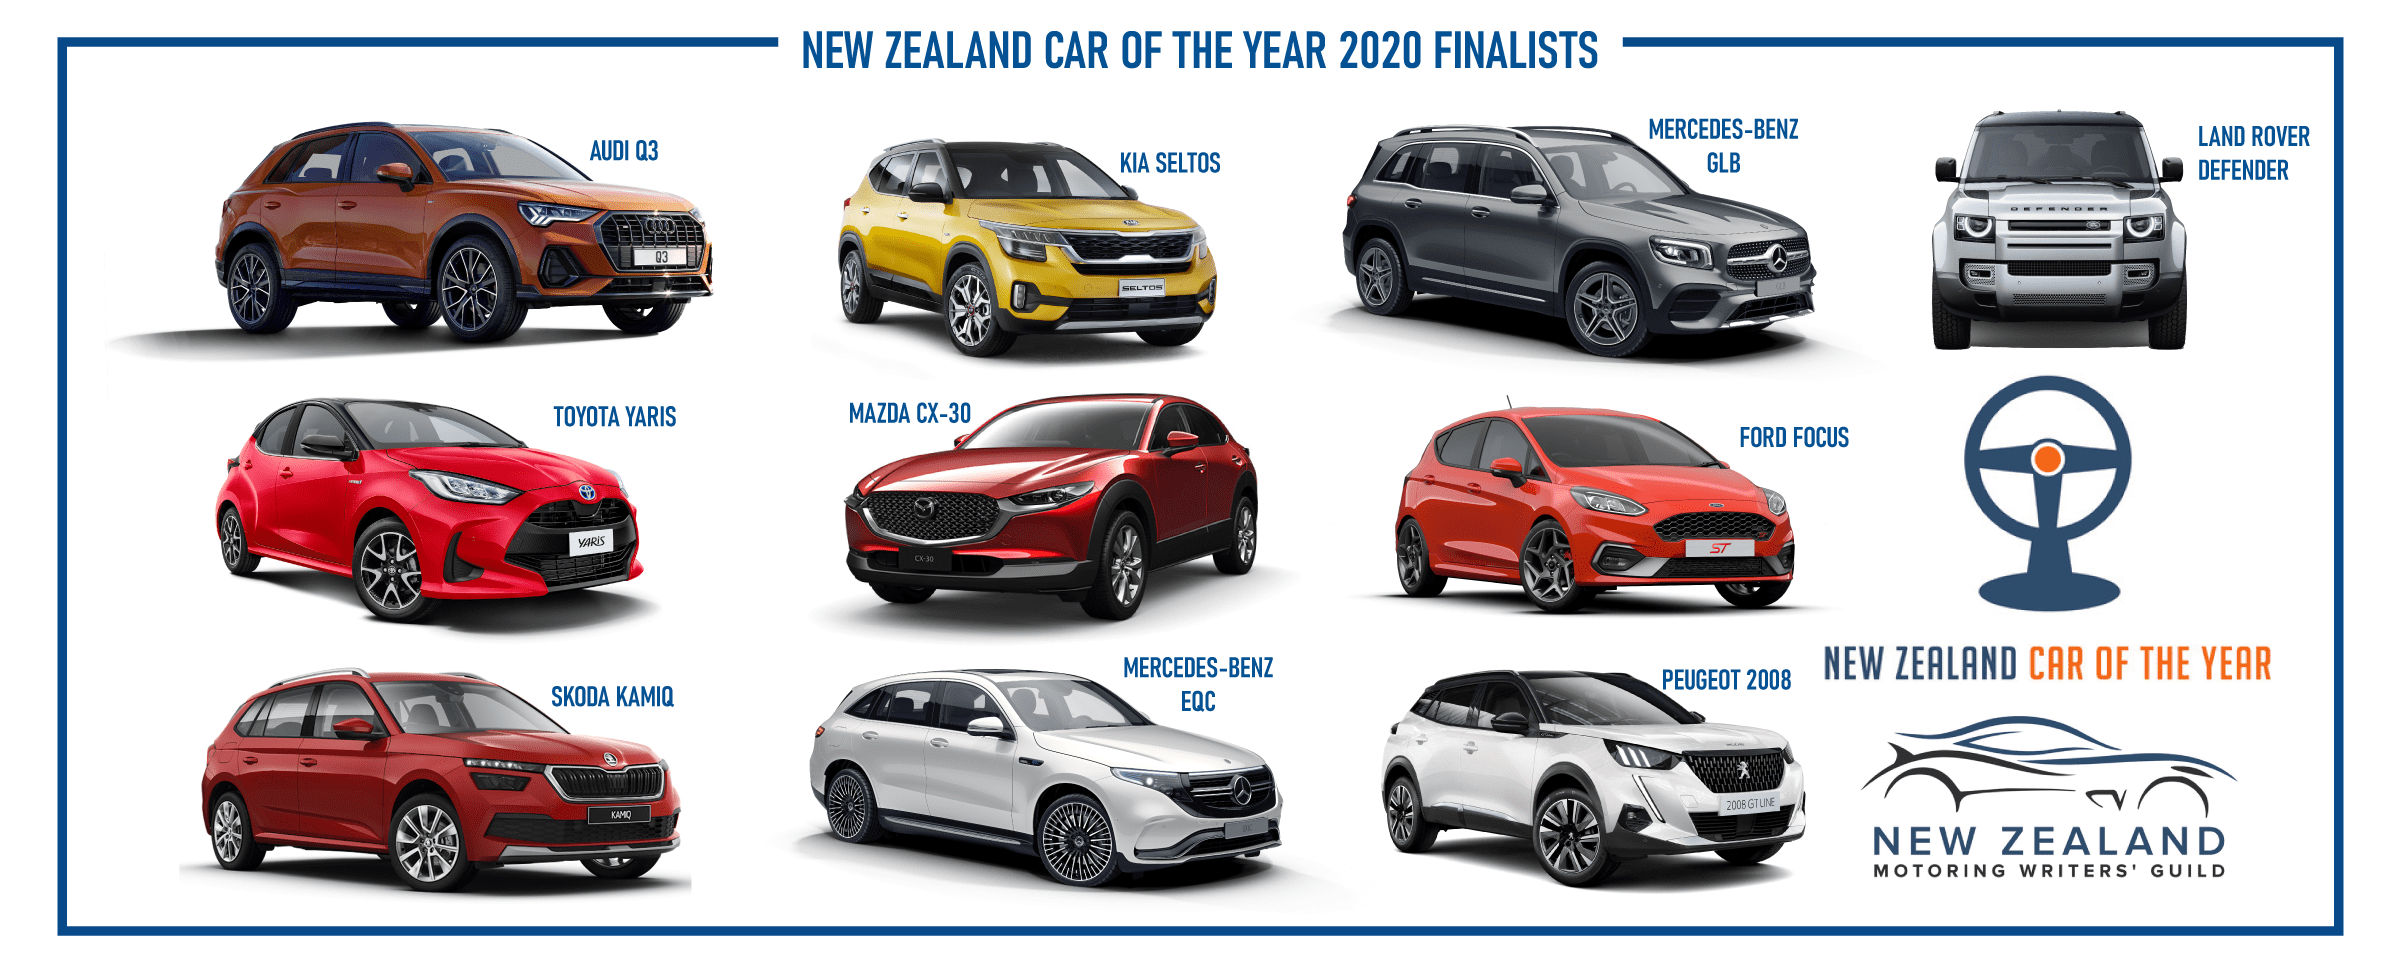 Finalists announced for NZ Car of the Year award